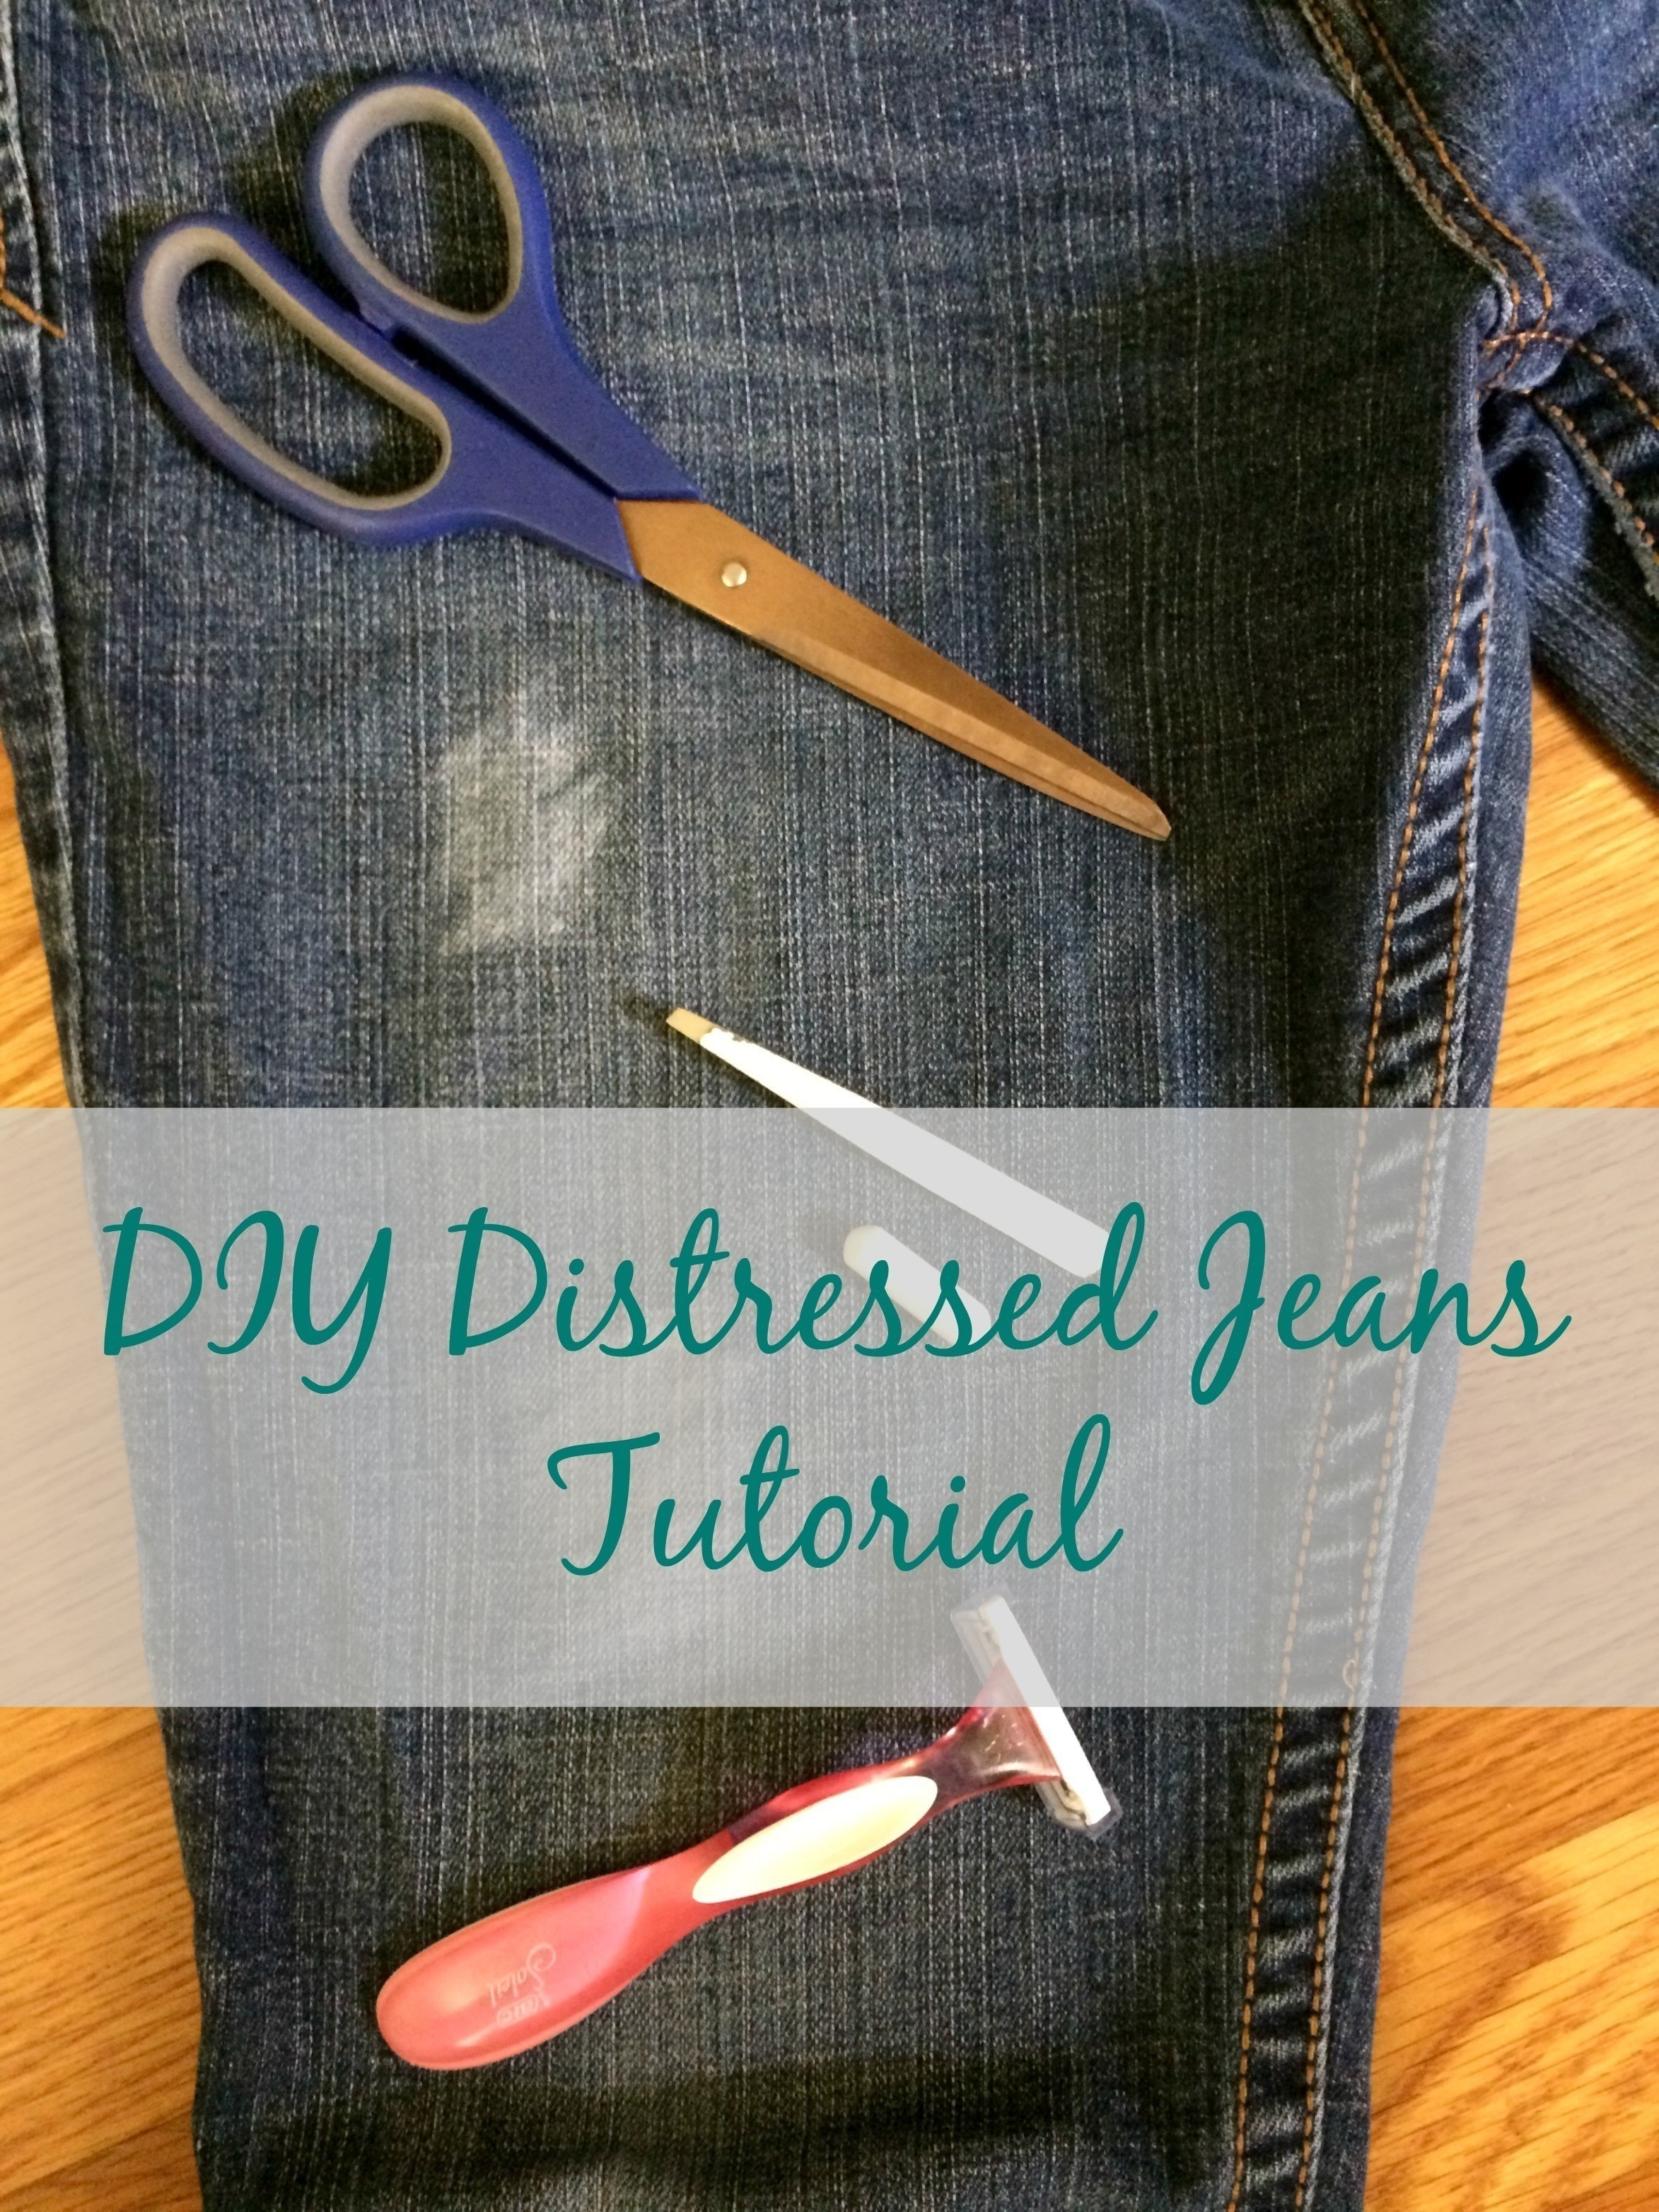 Distressed Jeans Tutorial 183 How To Rip A Pair Of Ripped Jeans 183 Other On Cut Out Keep